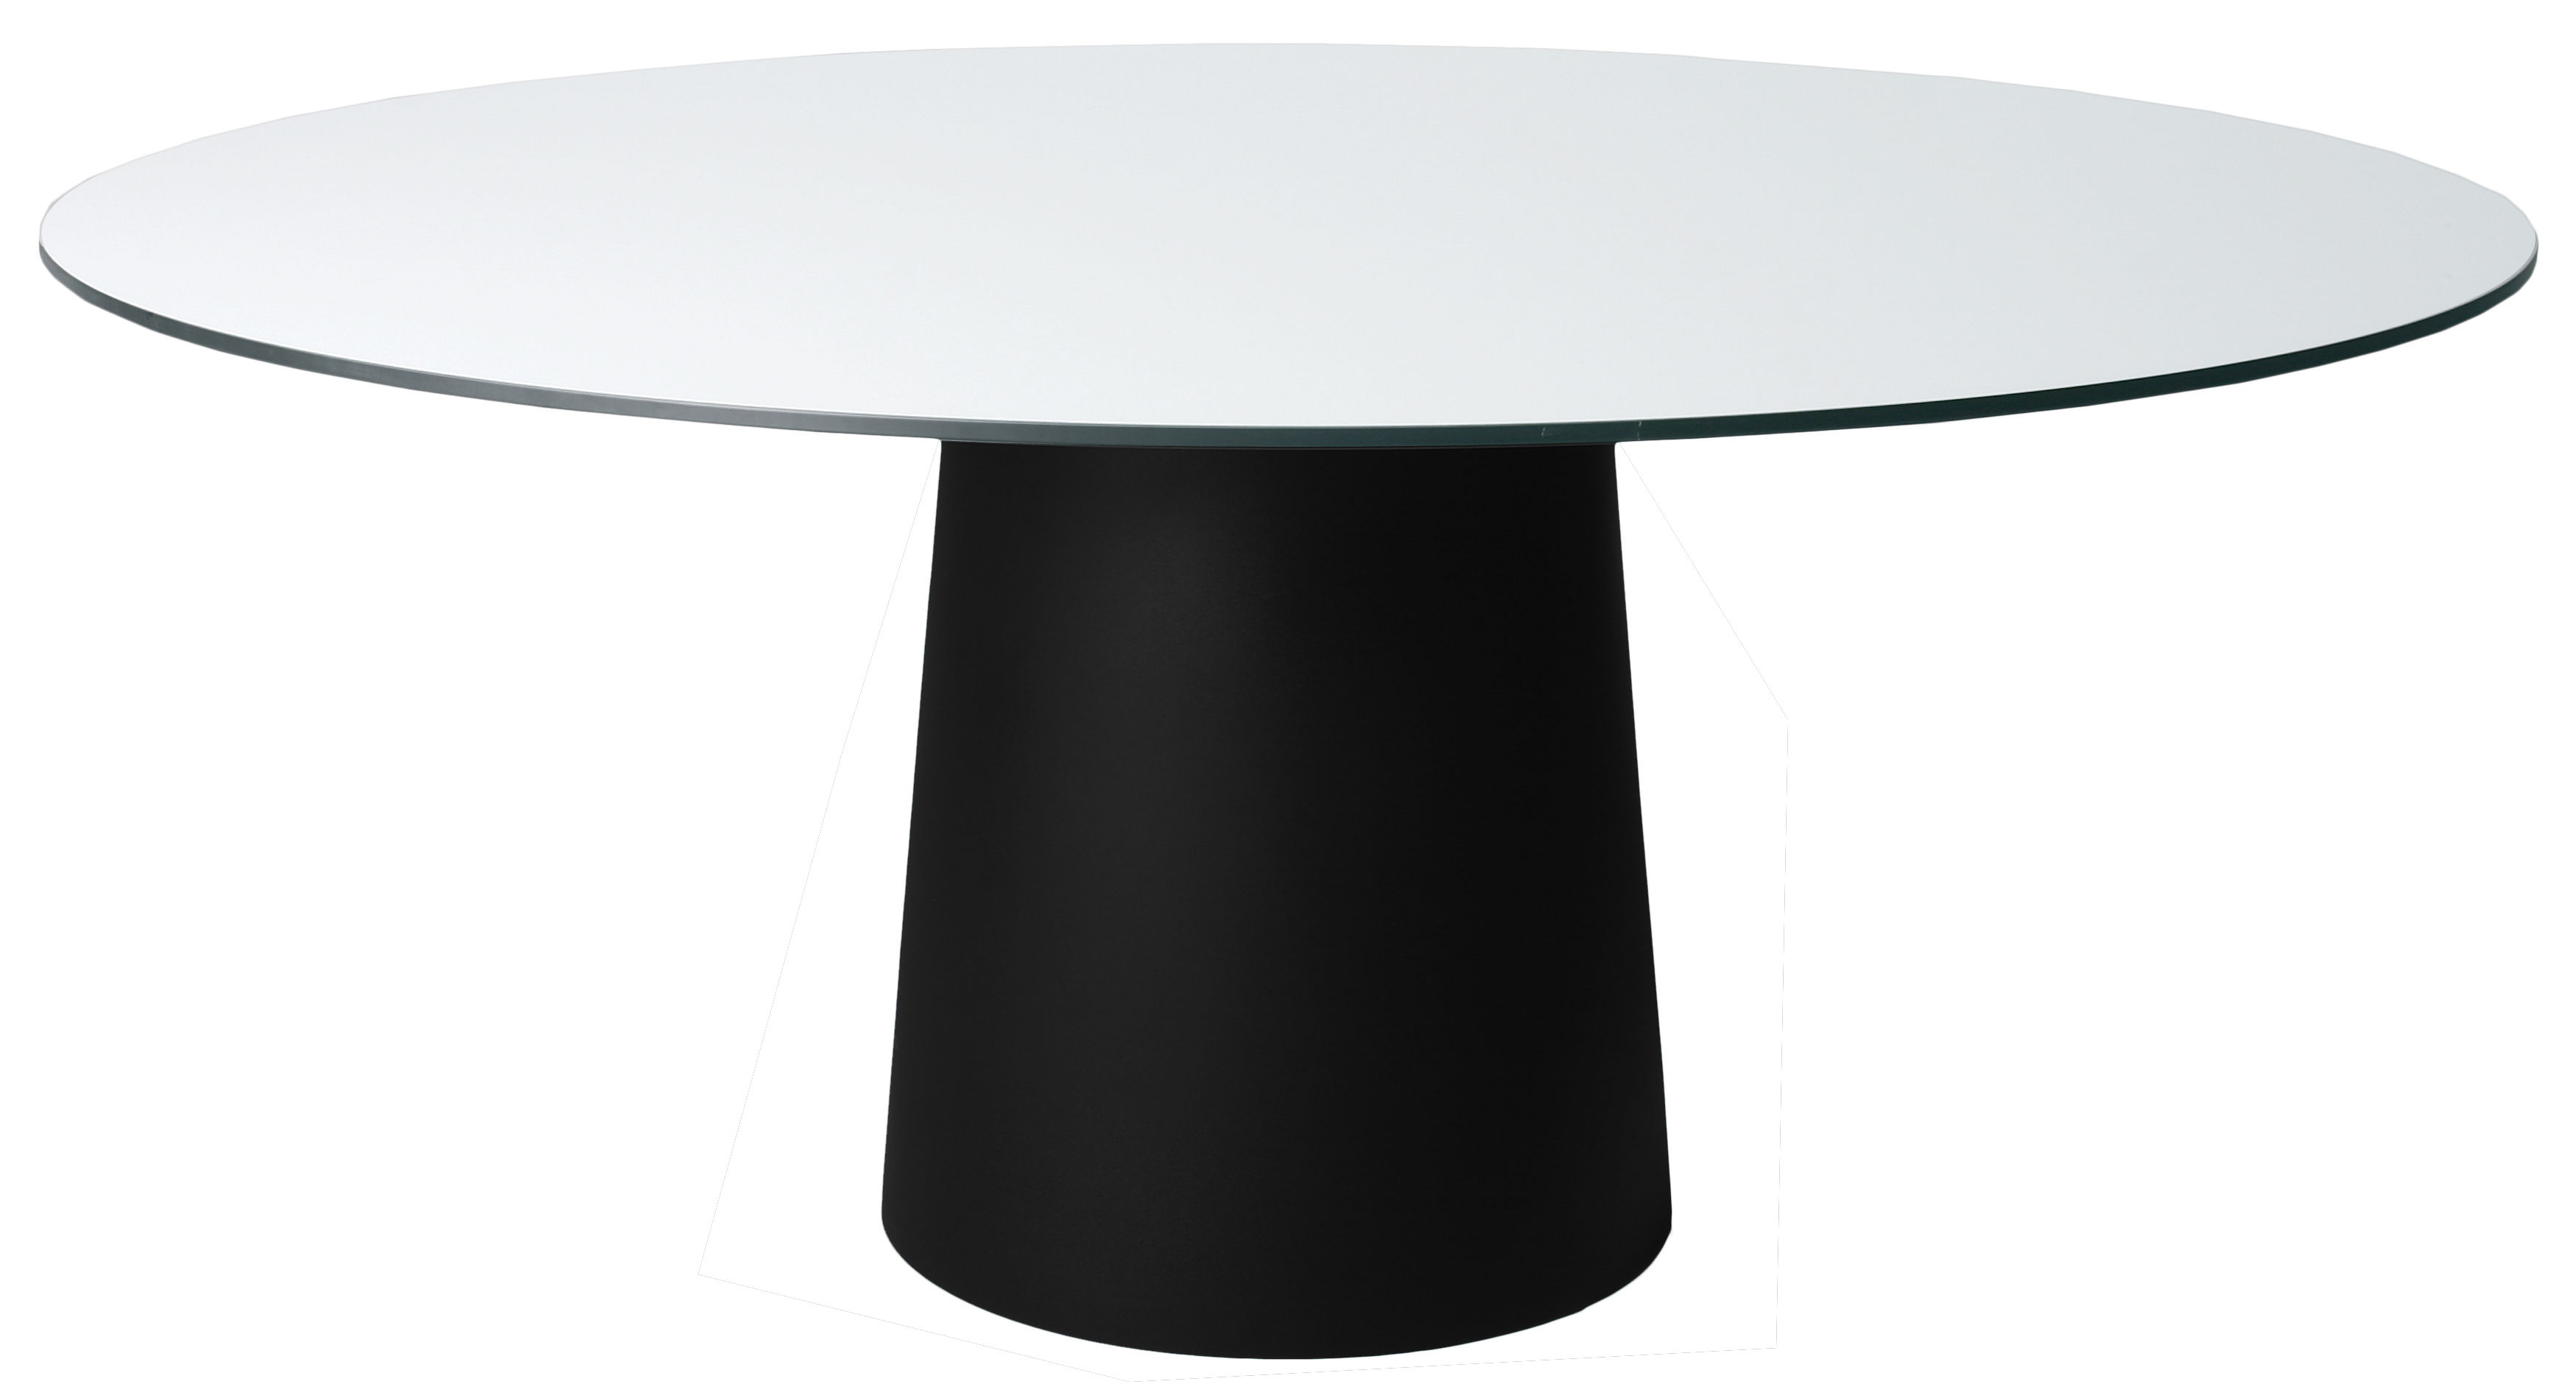 Outdoor - Garden Tables - / Pied pour table Container Table accessory - Ø 56 x H 70 cm - For top Ø 160 cm by Moooi - Black foot Ø 56 cm - Polypropylene